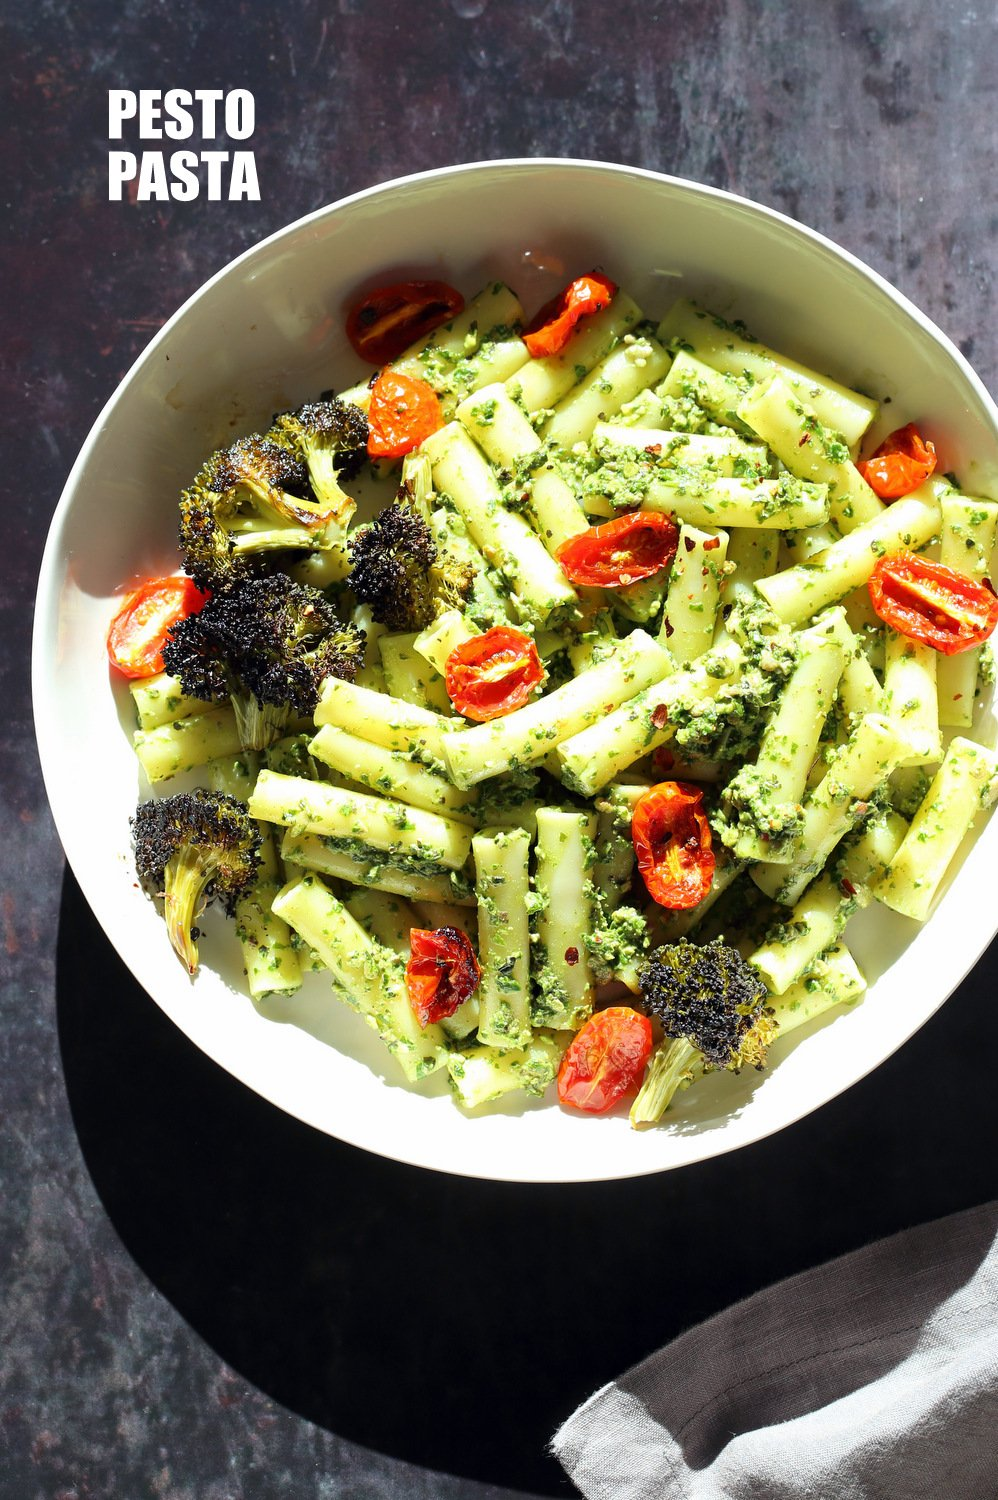 Vegan Pesto Pasta with Charred Broccoli. Easy Vegan Pesto with Ziti, served with roasted cherry tomatoes and charred broccoli. 21 Gm of Protein #Vegan #Soyfree #Recipe #VeganRicha. Can be #glutenfree and #nutfree | VeganRicha.com